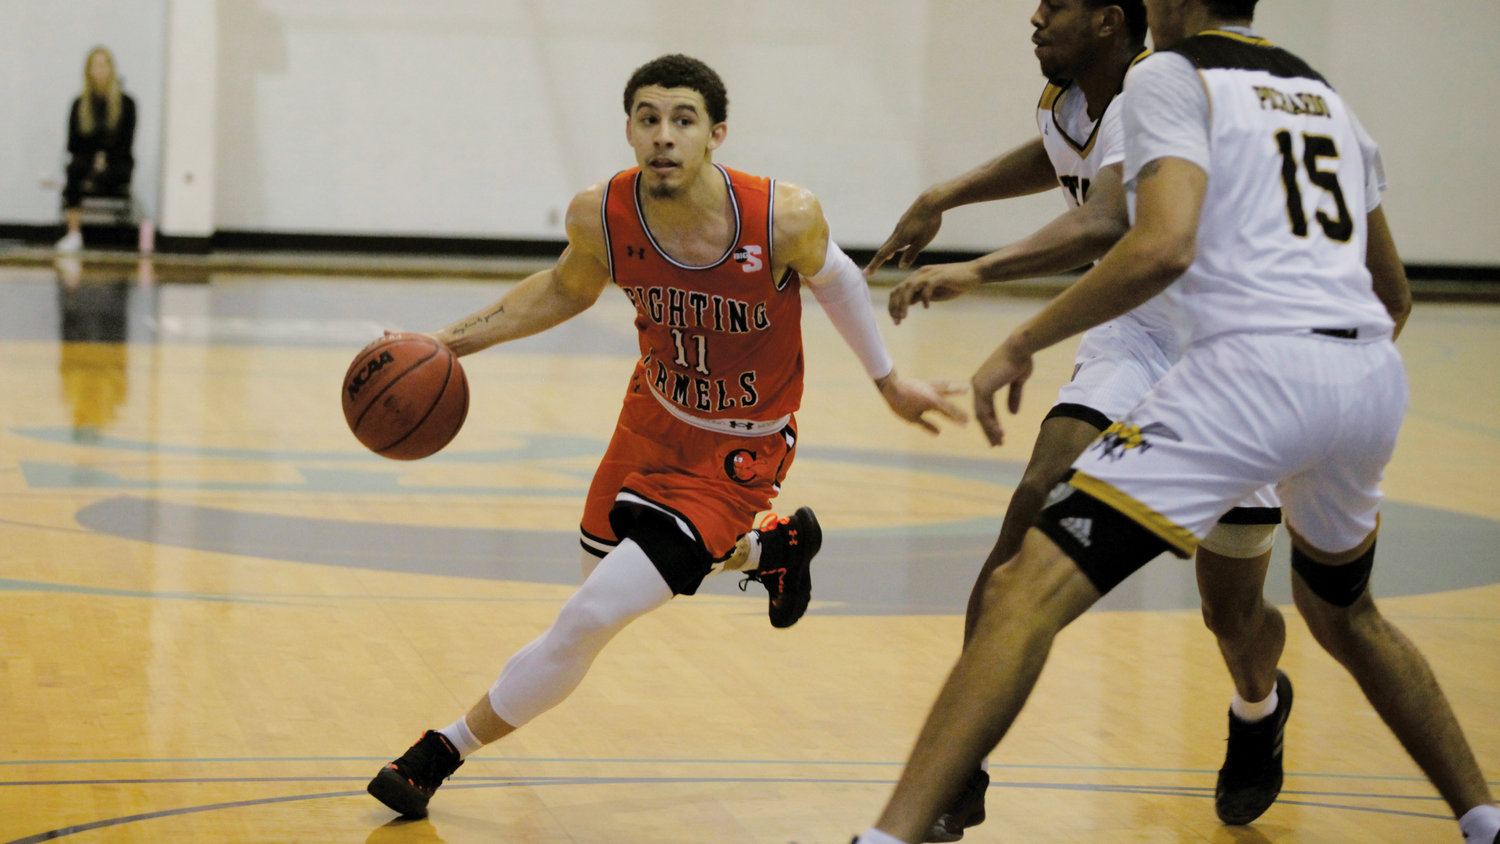 Jordan Whitfield drives to the hoop in Campbell's win over Alabama State on Saturday at the St. Pete Shootout at Eckerd College in St. Petersburg. Fla.